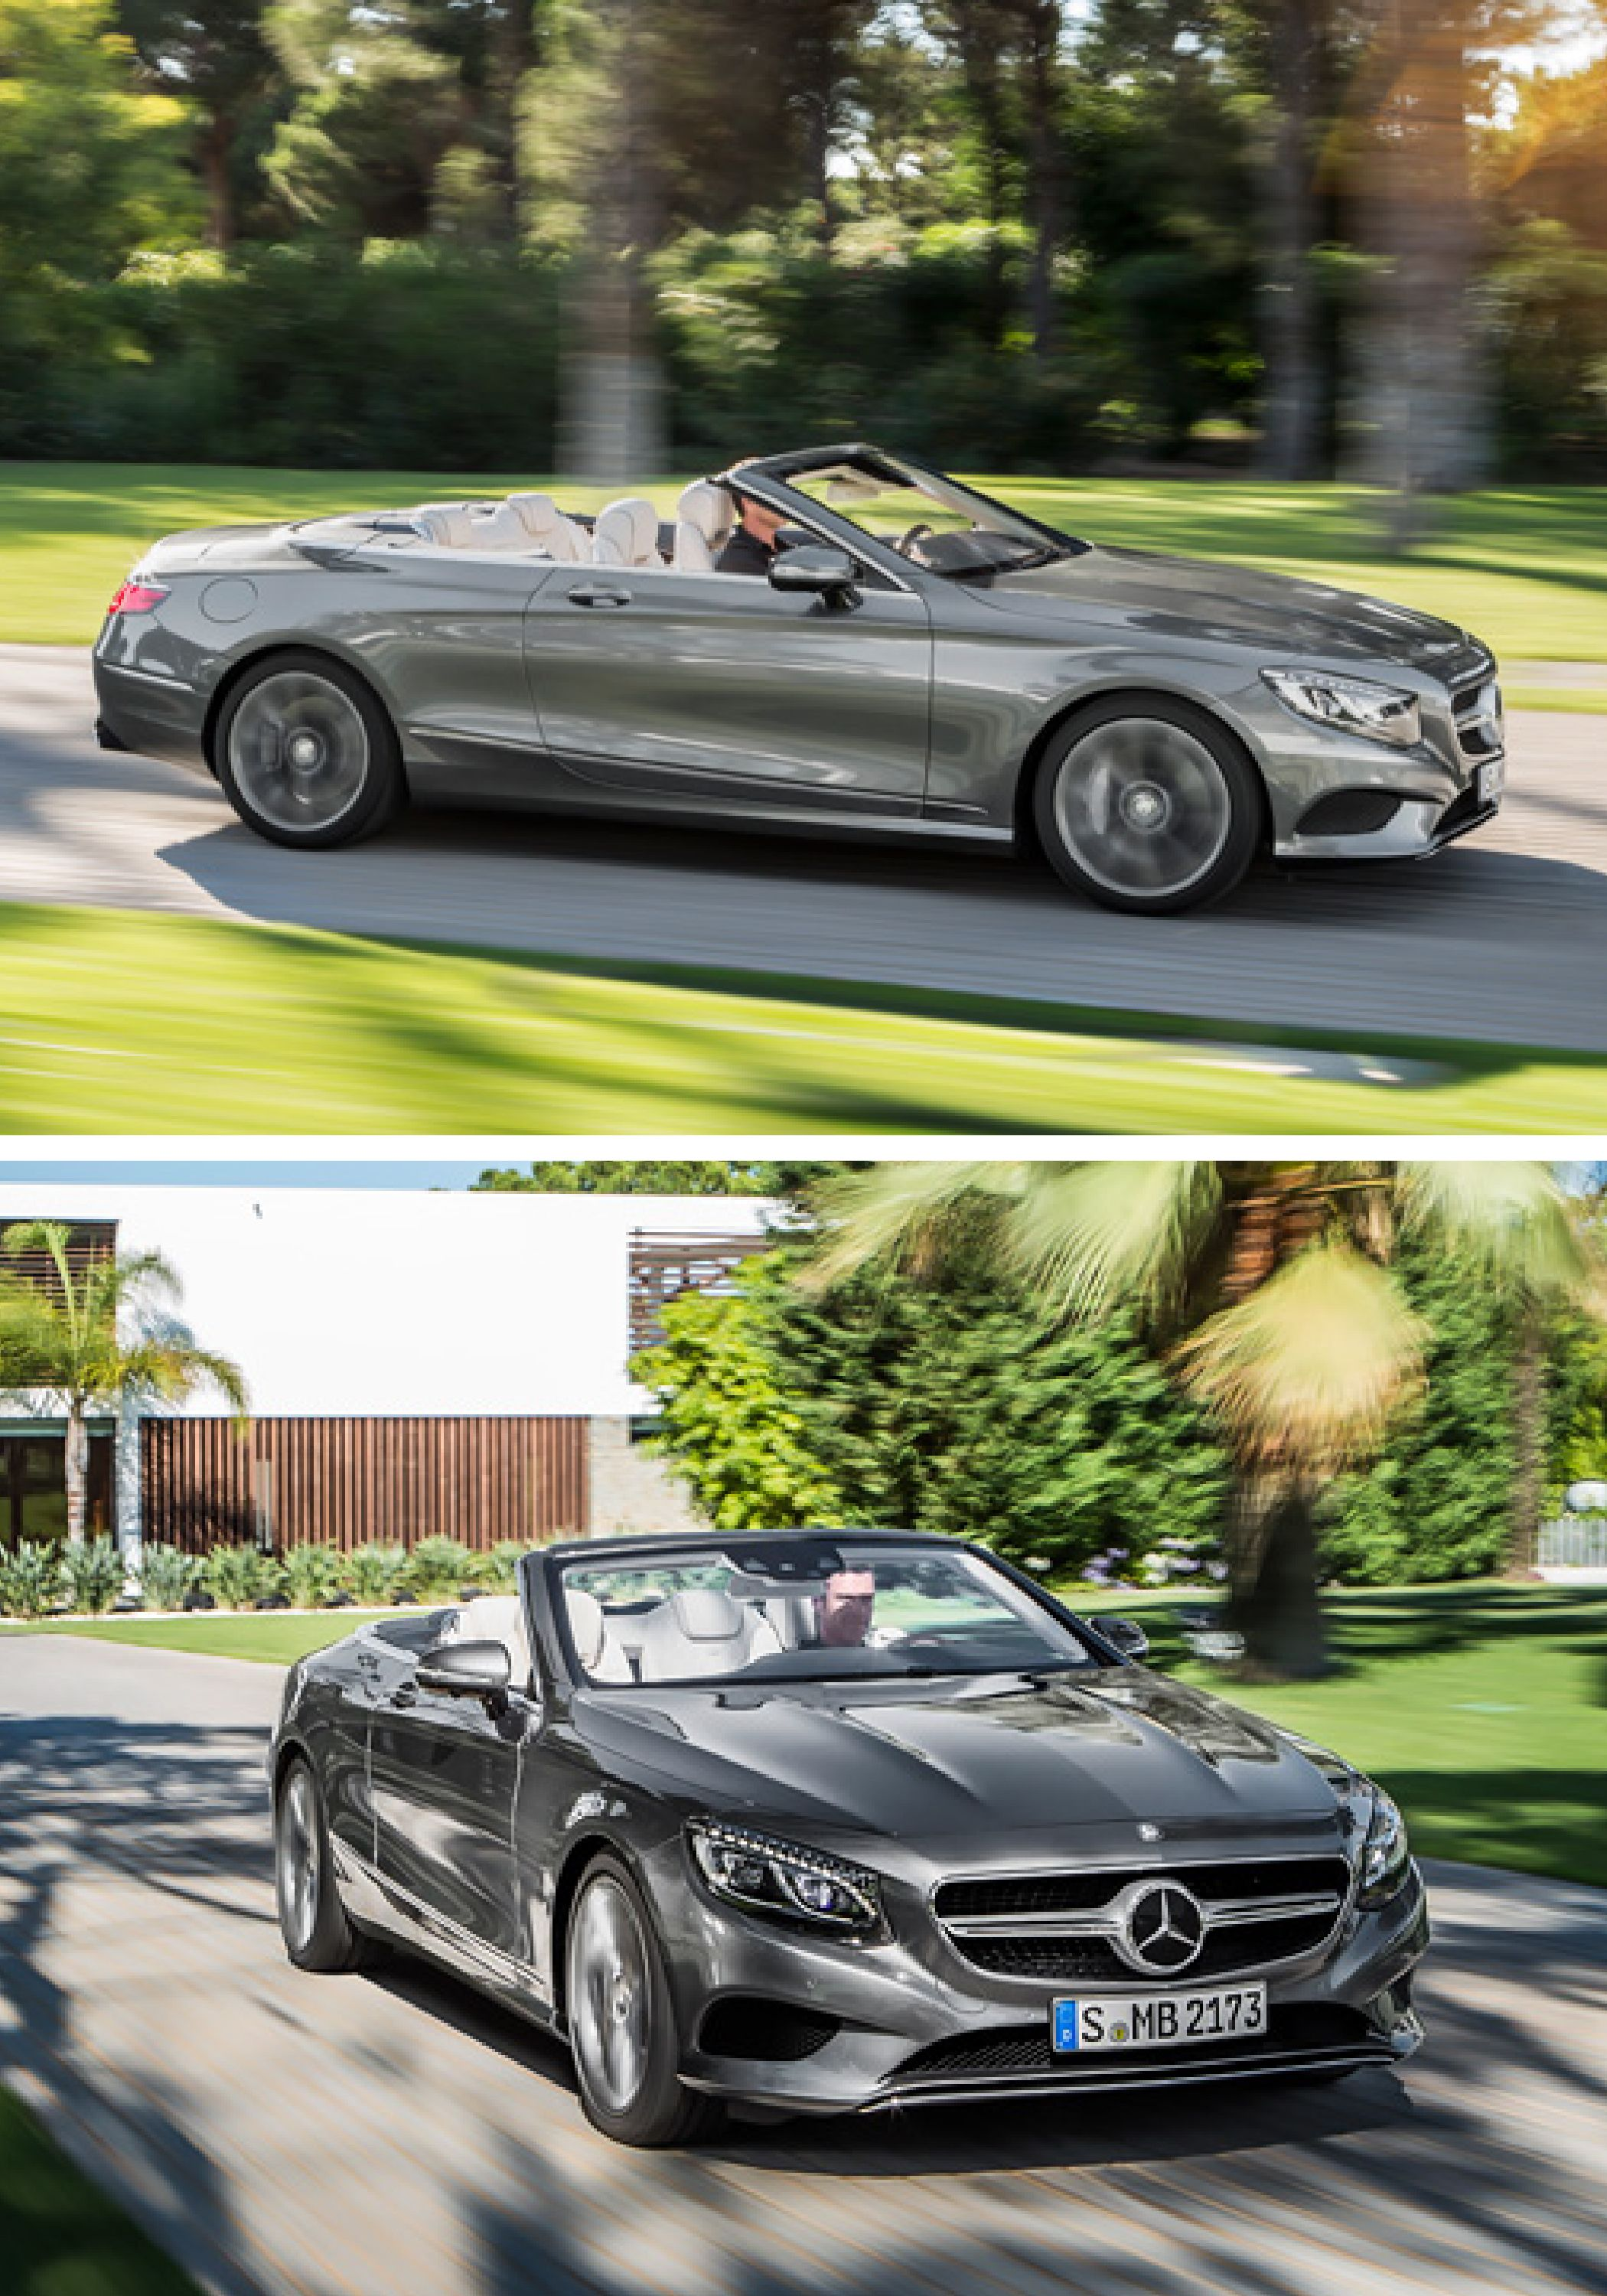 check out the sixth variant of the current s class family and the first open top luxury four seater from mercedes benz  [ 2100 x 3000 Pixel ]